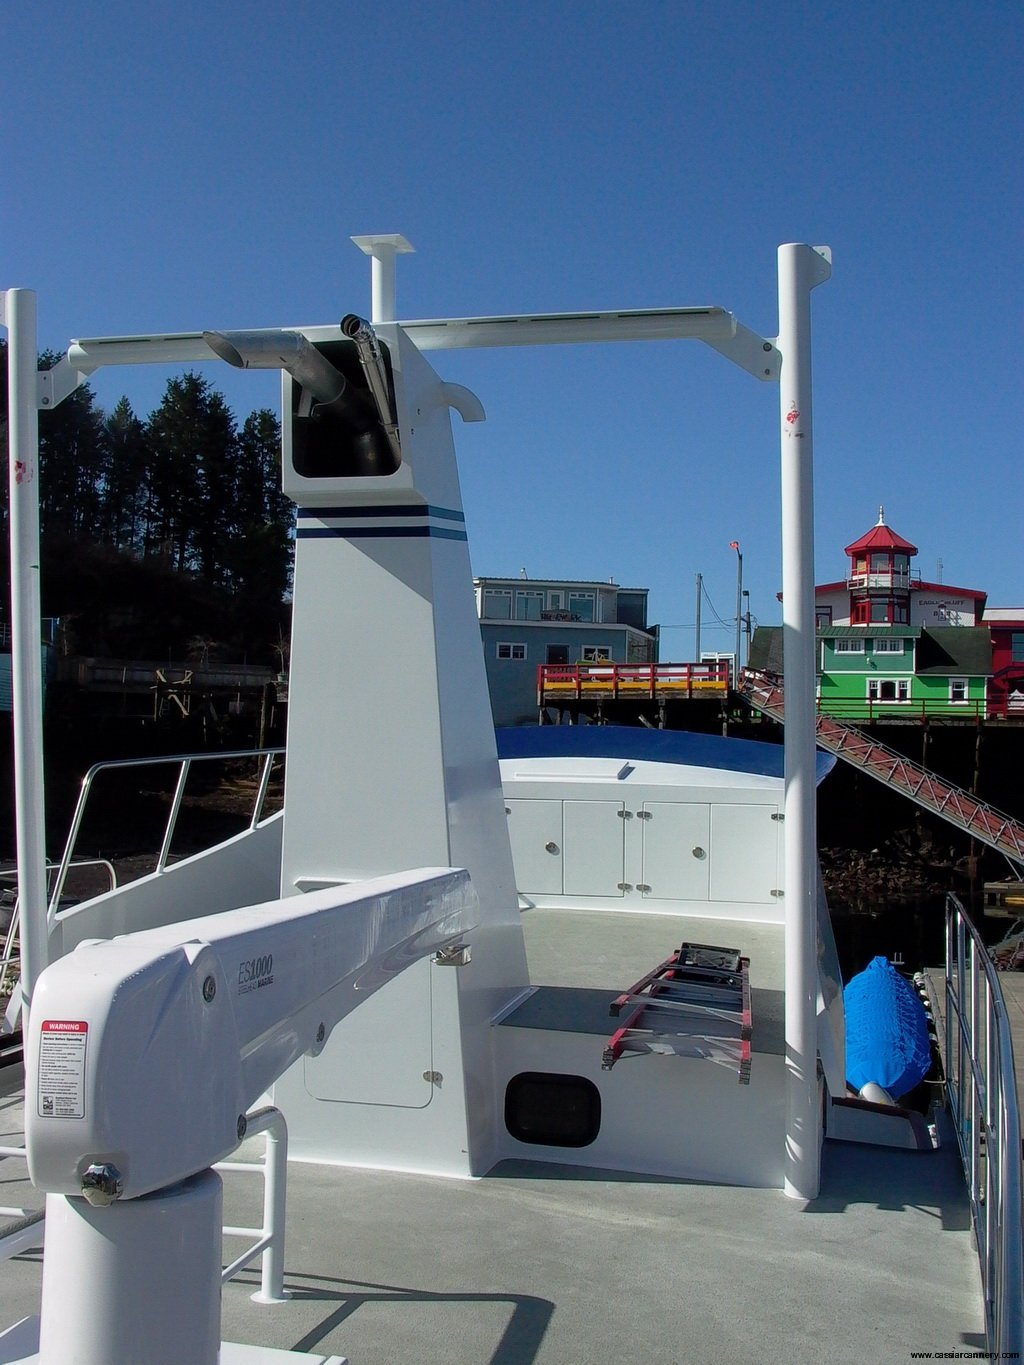 Poseidon Marine - Charlie M - upper deck after the boat bubble was removed